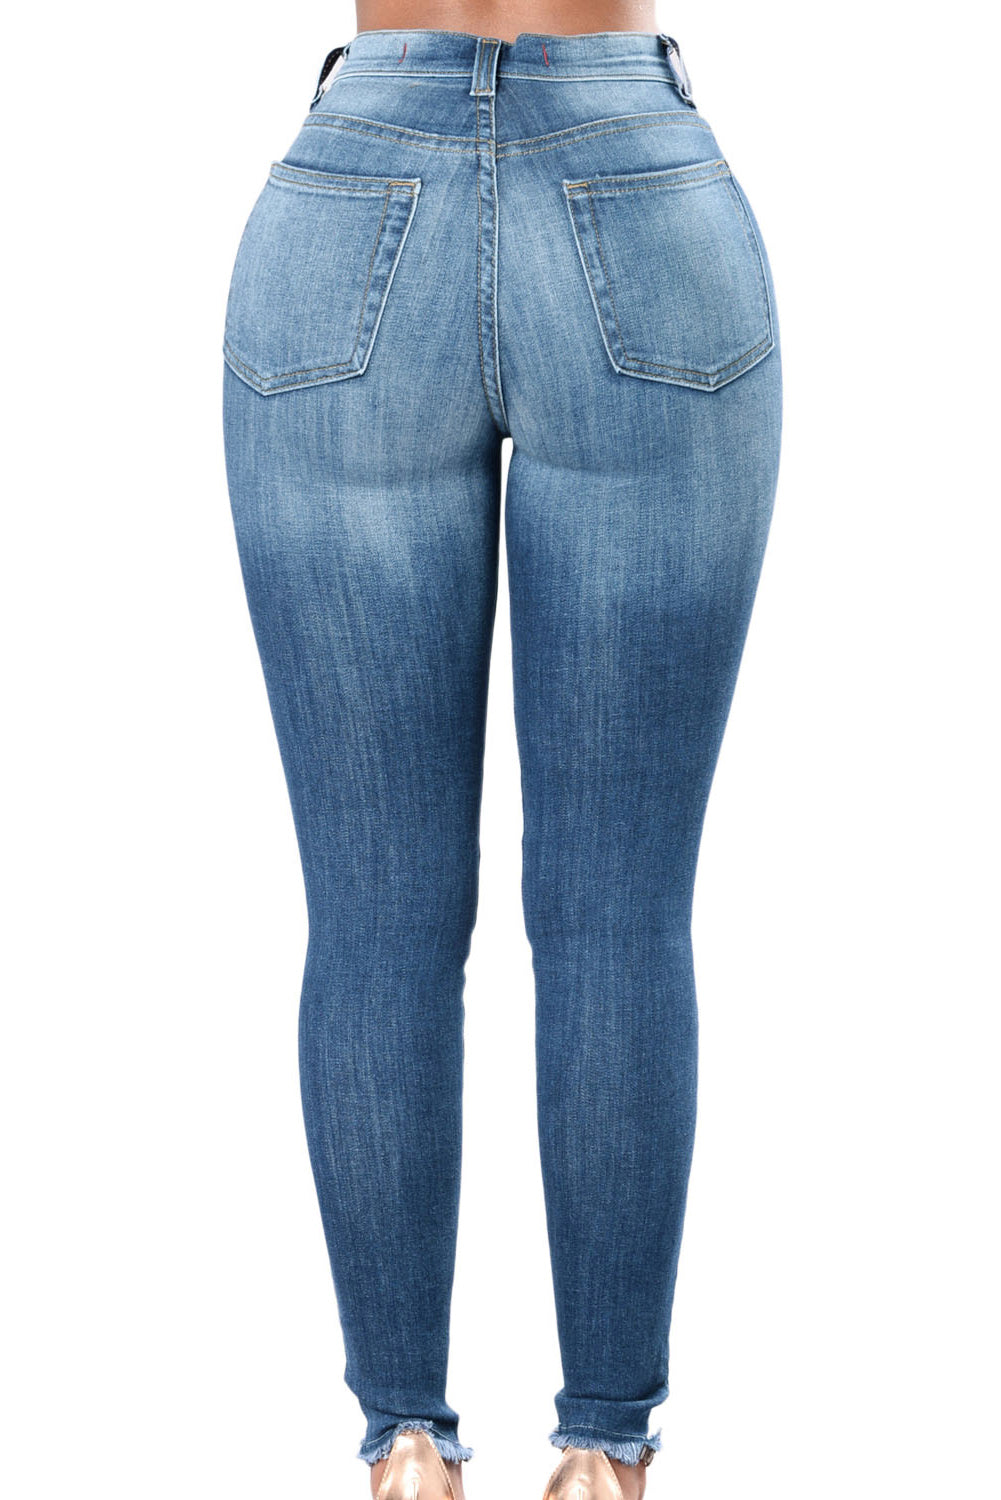 Rose Embroidered Knee Distress Blue Skinny Jeans